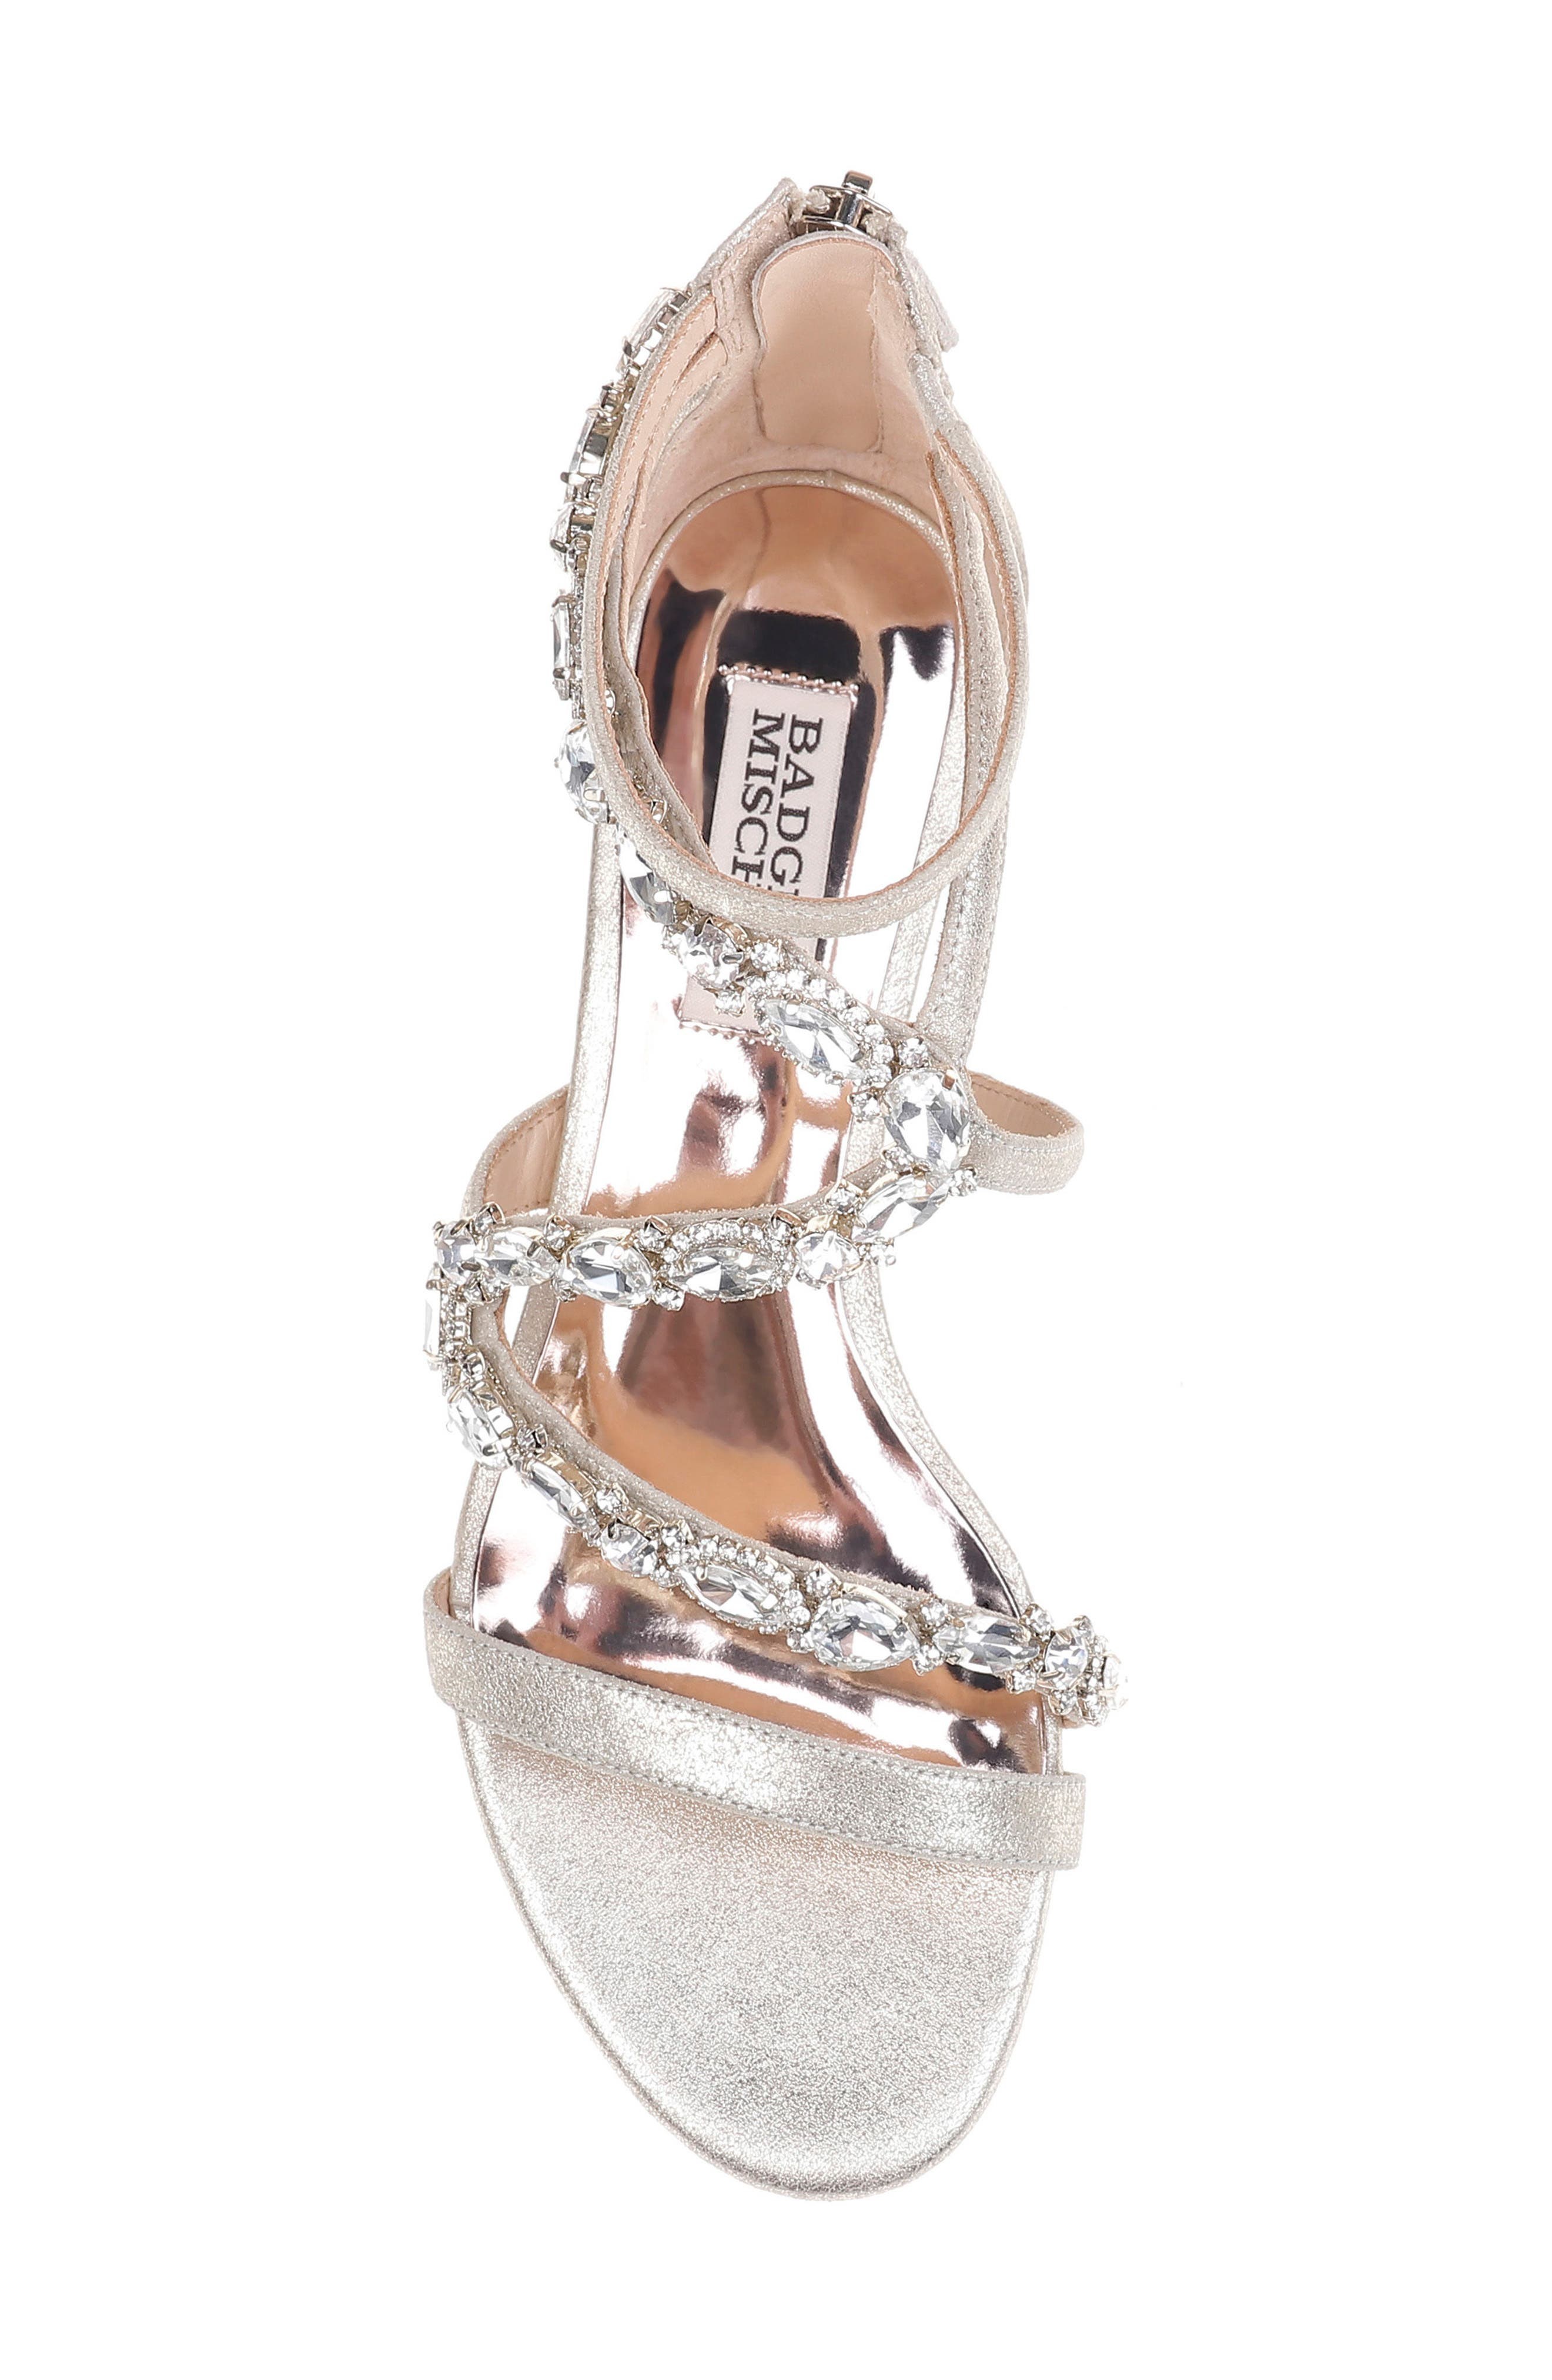 Sierra Strappy Wedge Sandal,                             Alternate thumbnail 5, color,                             Platino Suede